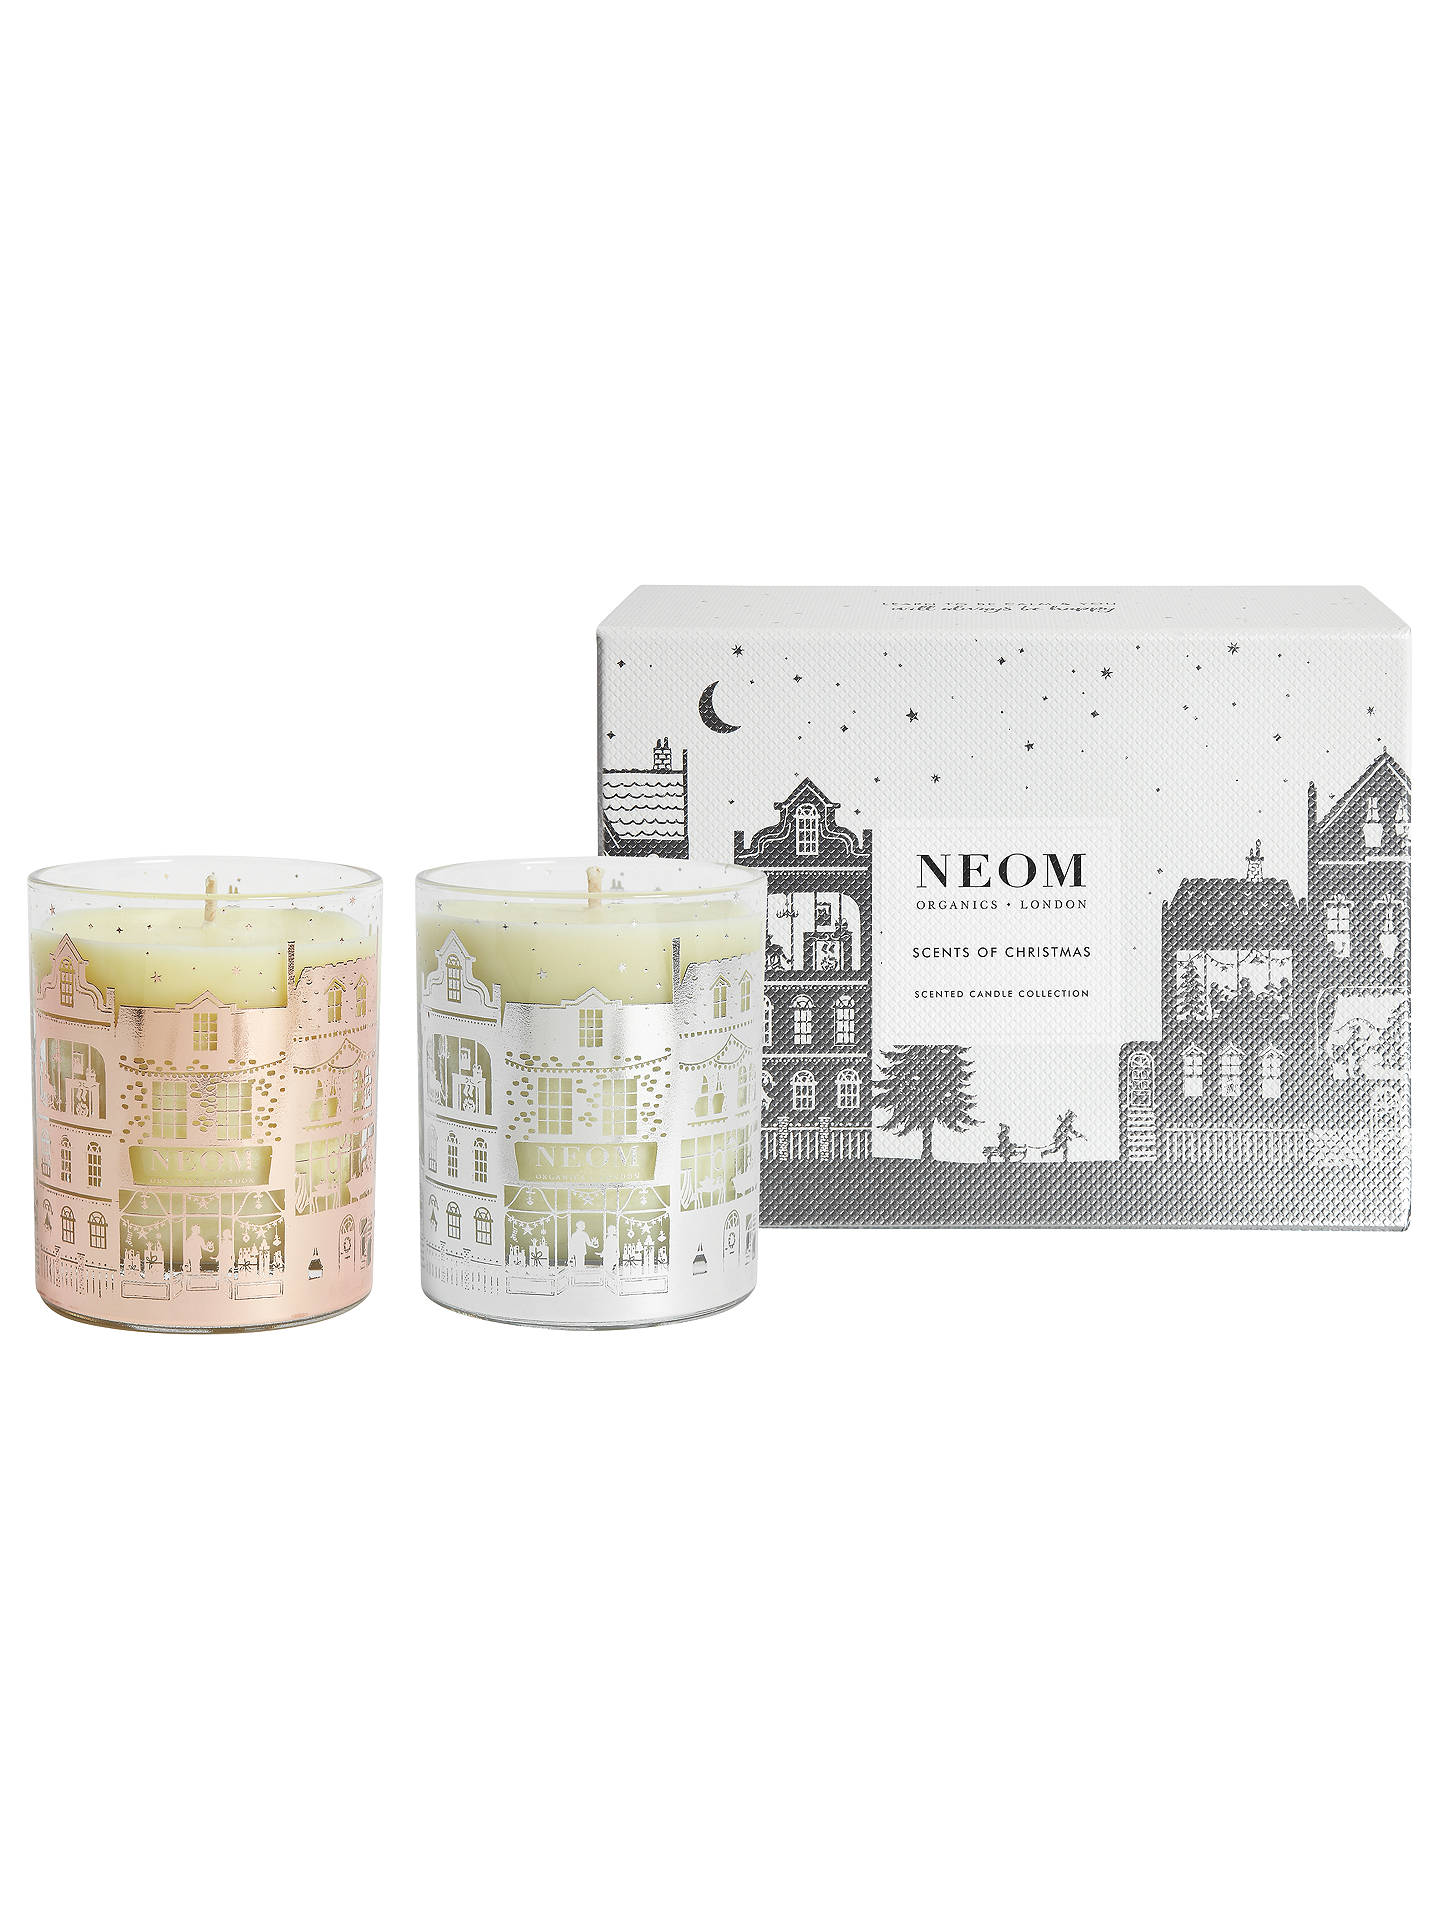 Neom Organics London Scents Of Christmas Candle Gift Set Online At Johnlewis